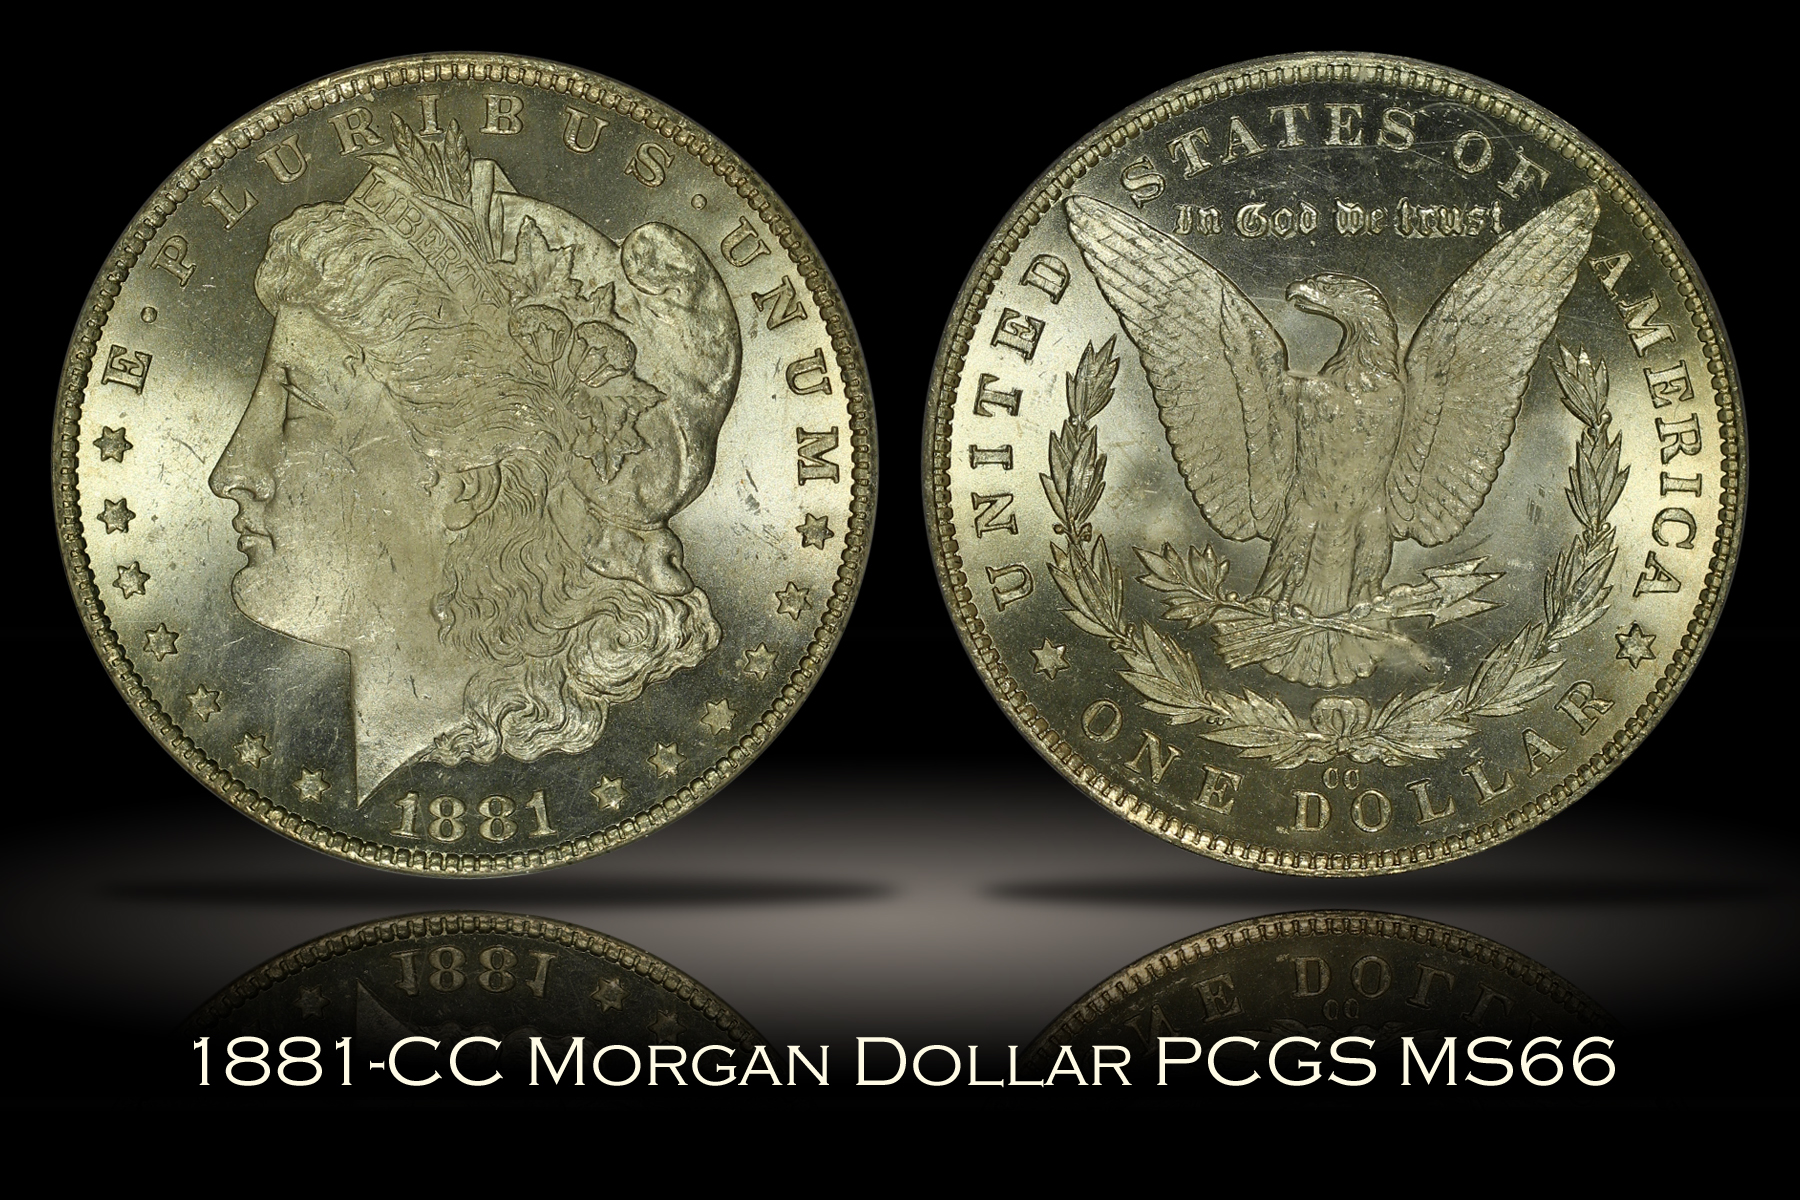 1881-CC Morgan Dollar PCGS MS66